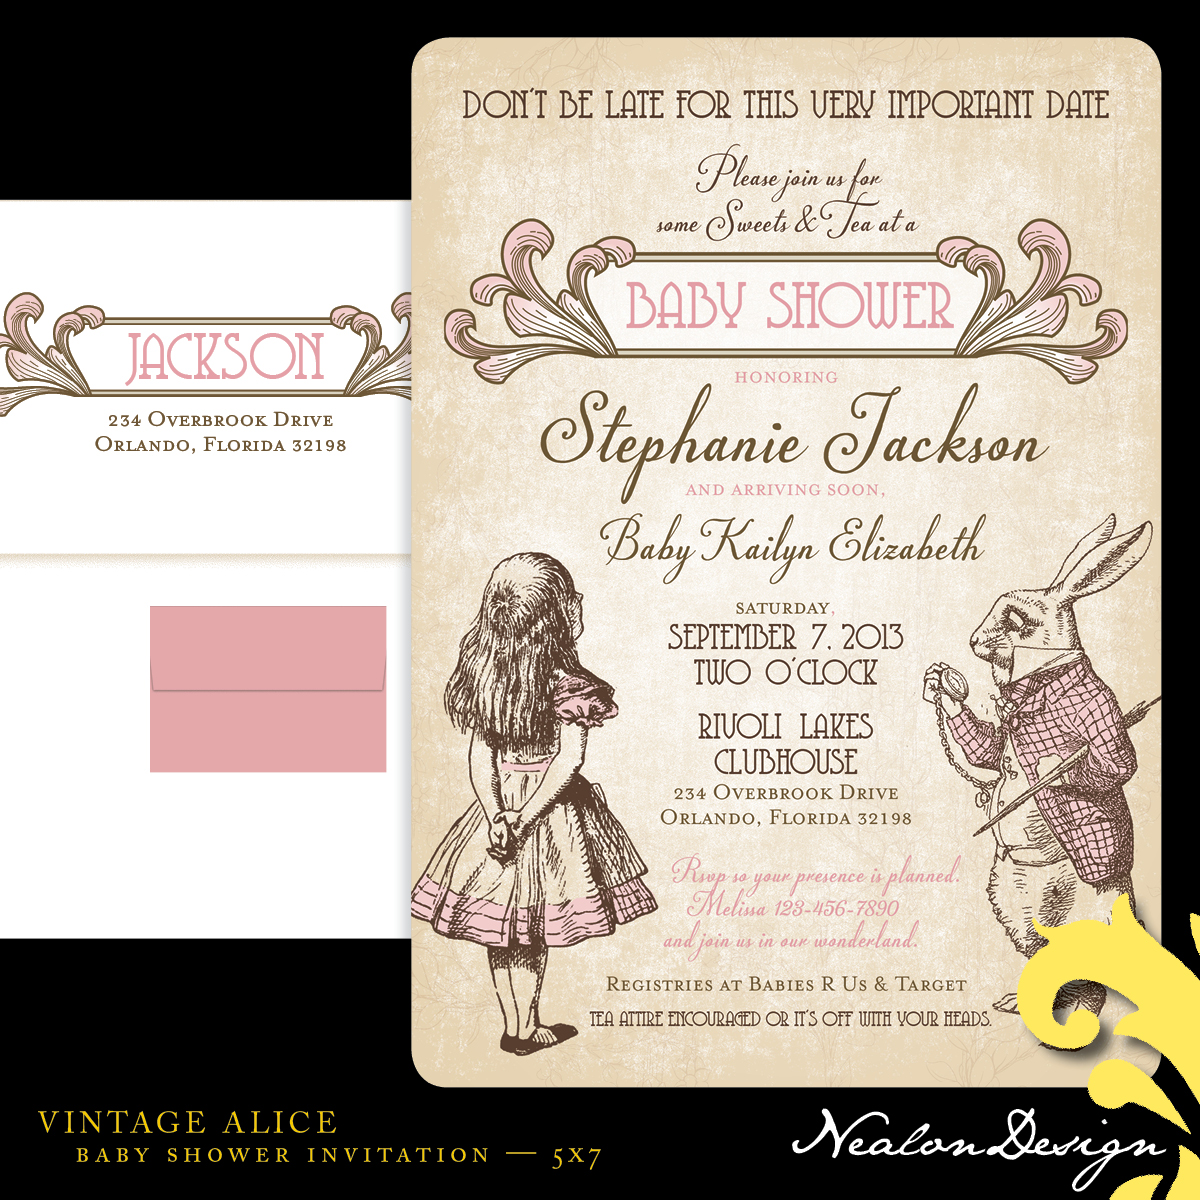 Nealon Design: VINTAGE ALICE — Baby Shower Invitation